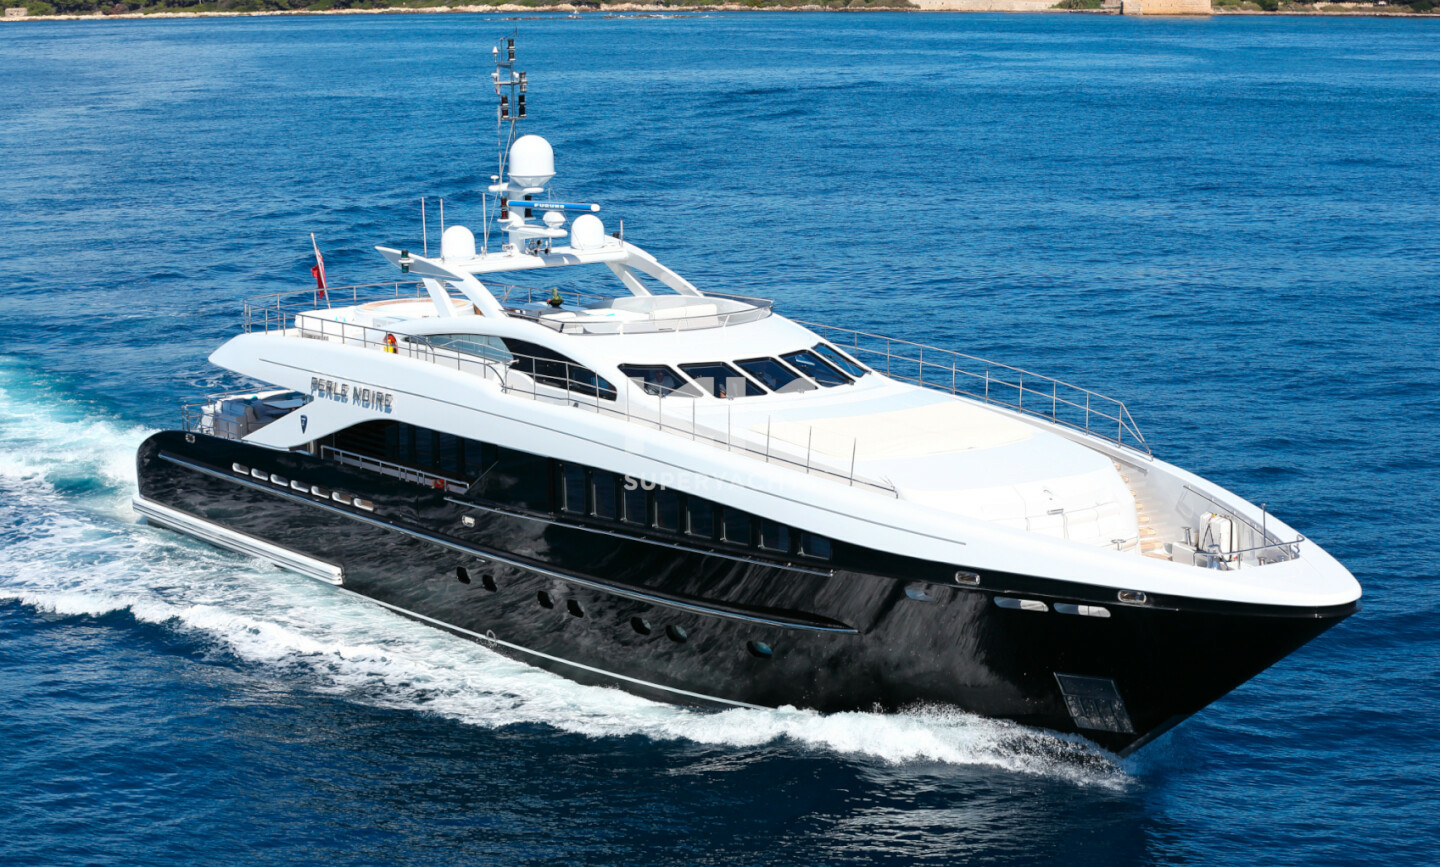 Perle Noire yacht for Sale 3